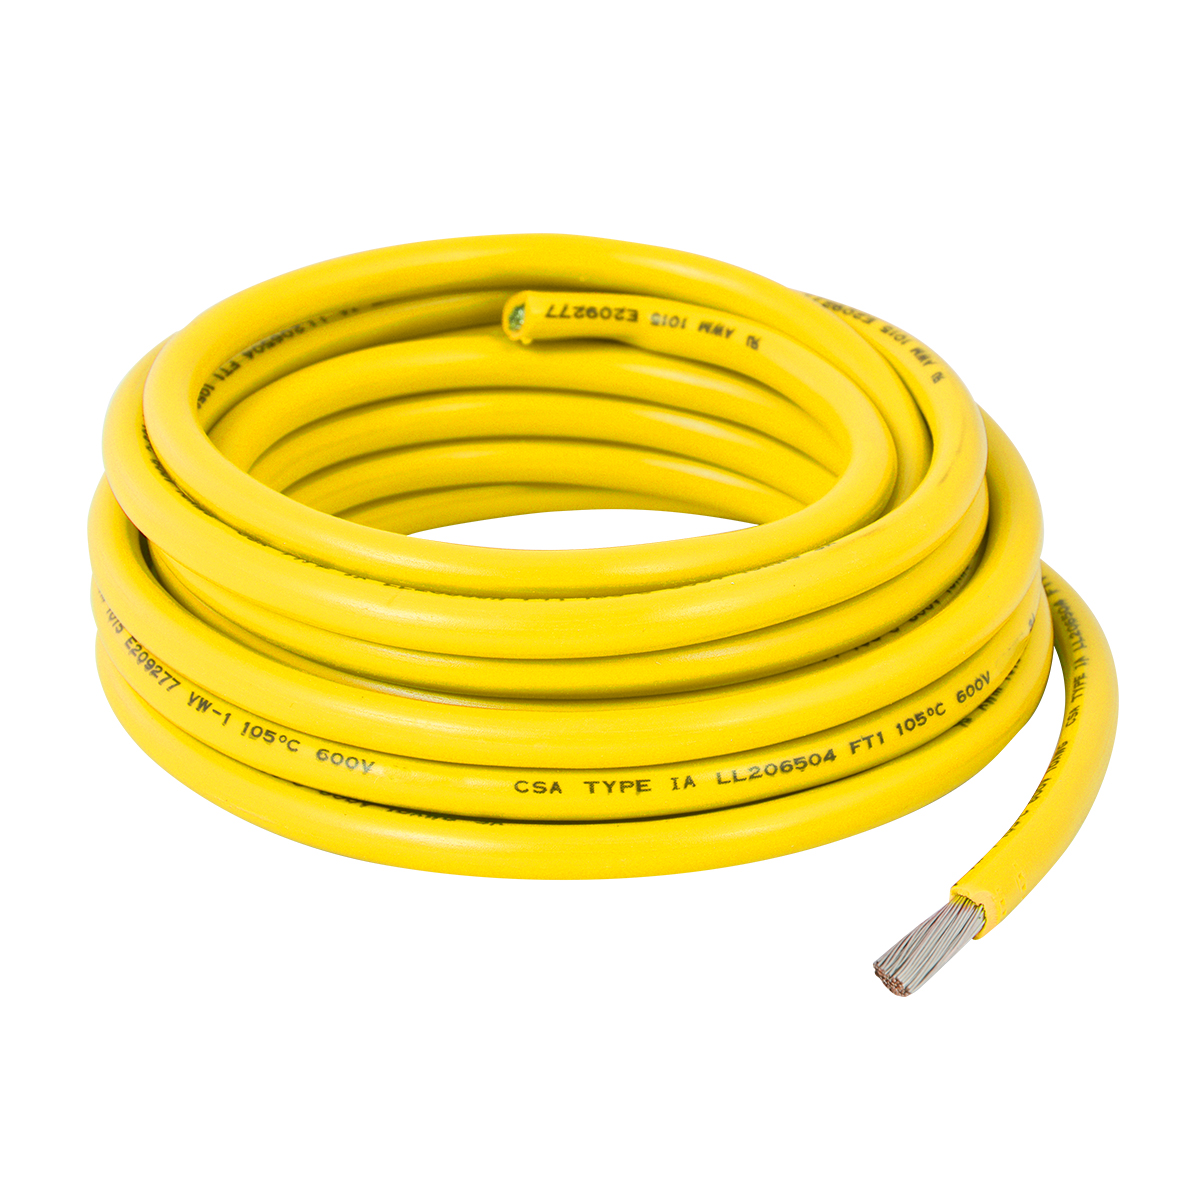 55004 Yellow UL Listed Primary Wires in 14 Gauge